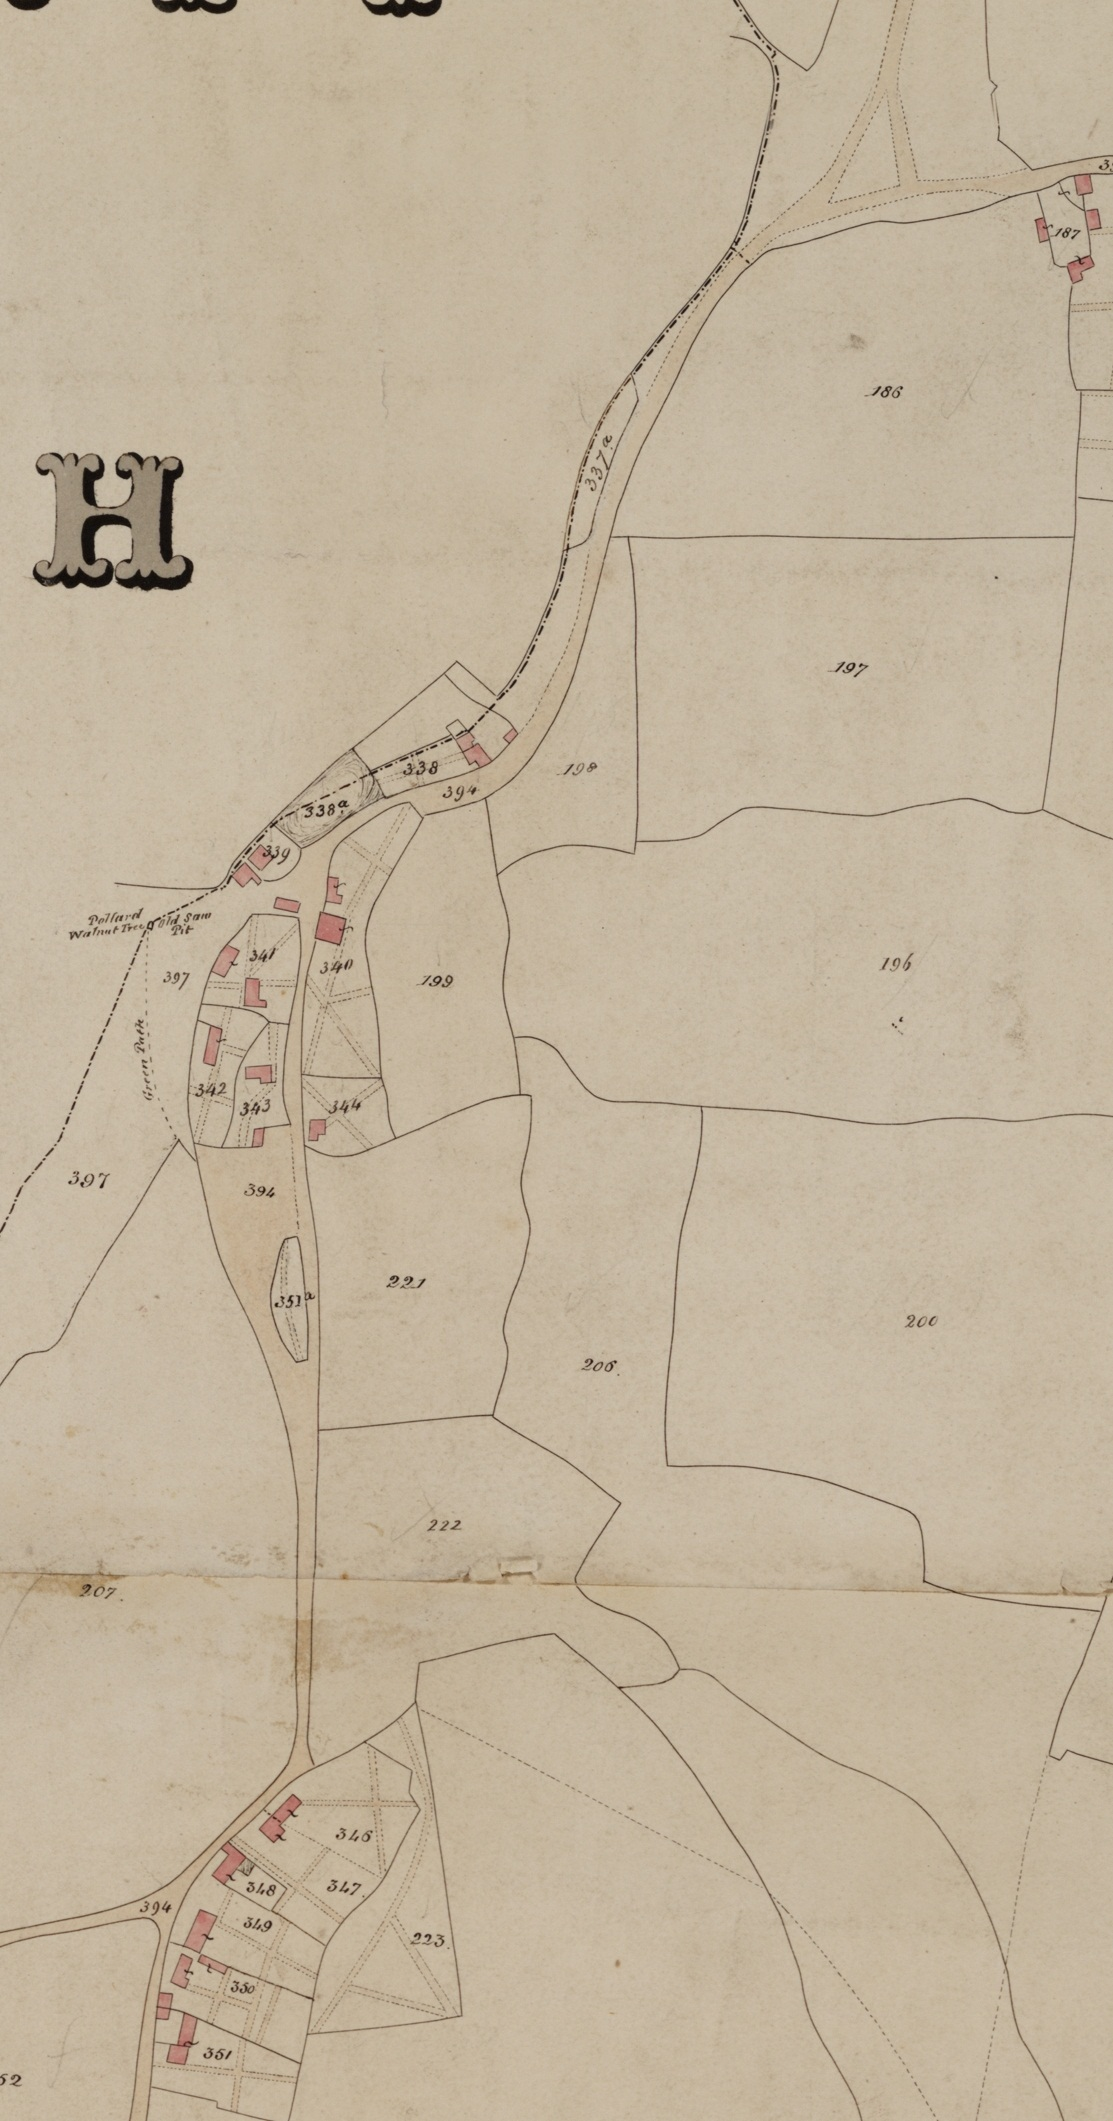 Lodsworth Tithe Map 1842 - Smithbrook